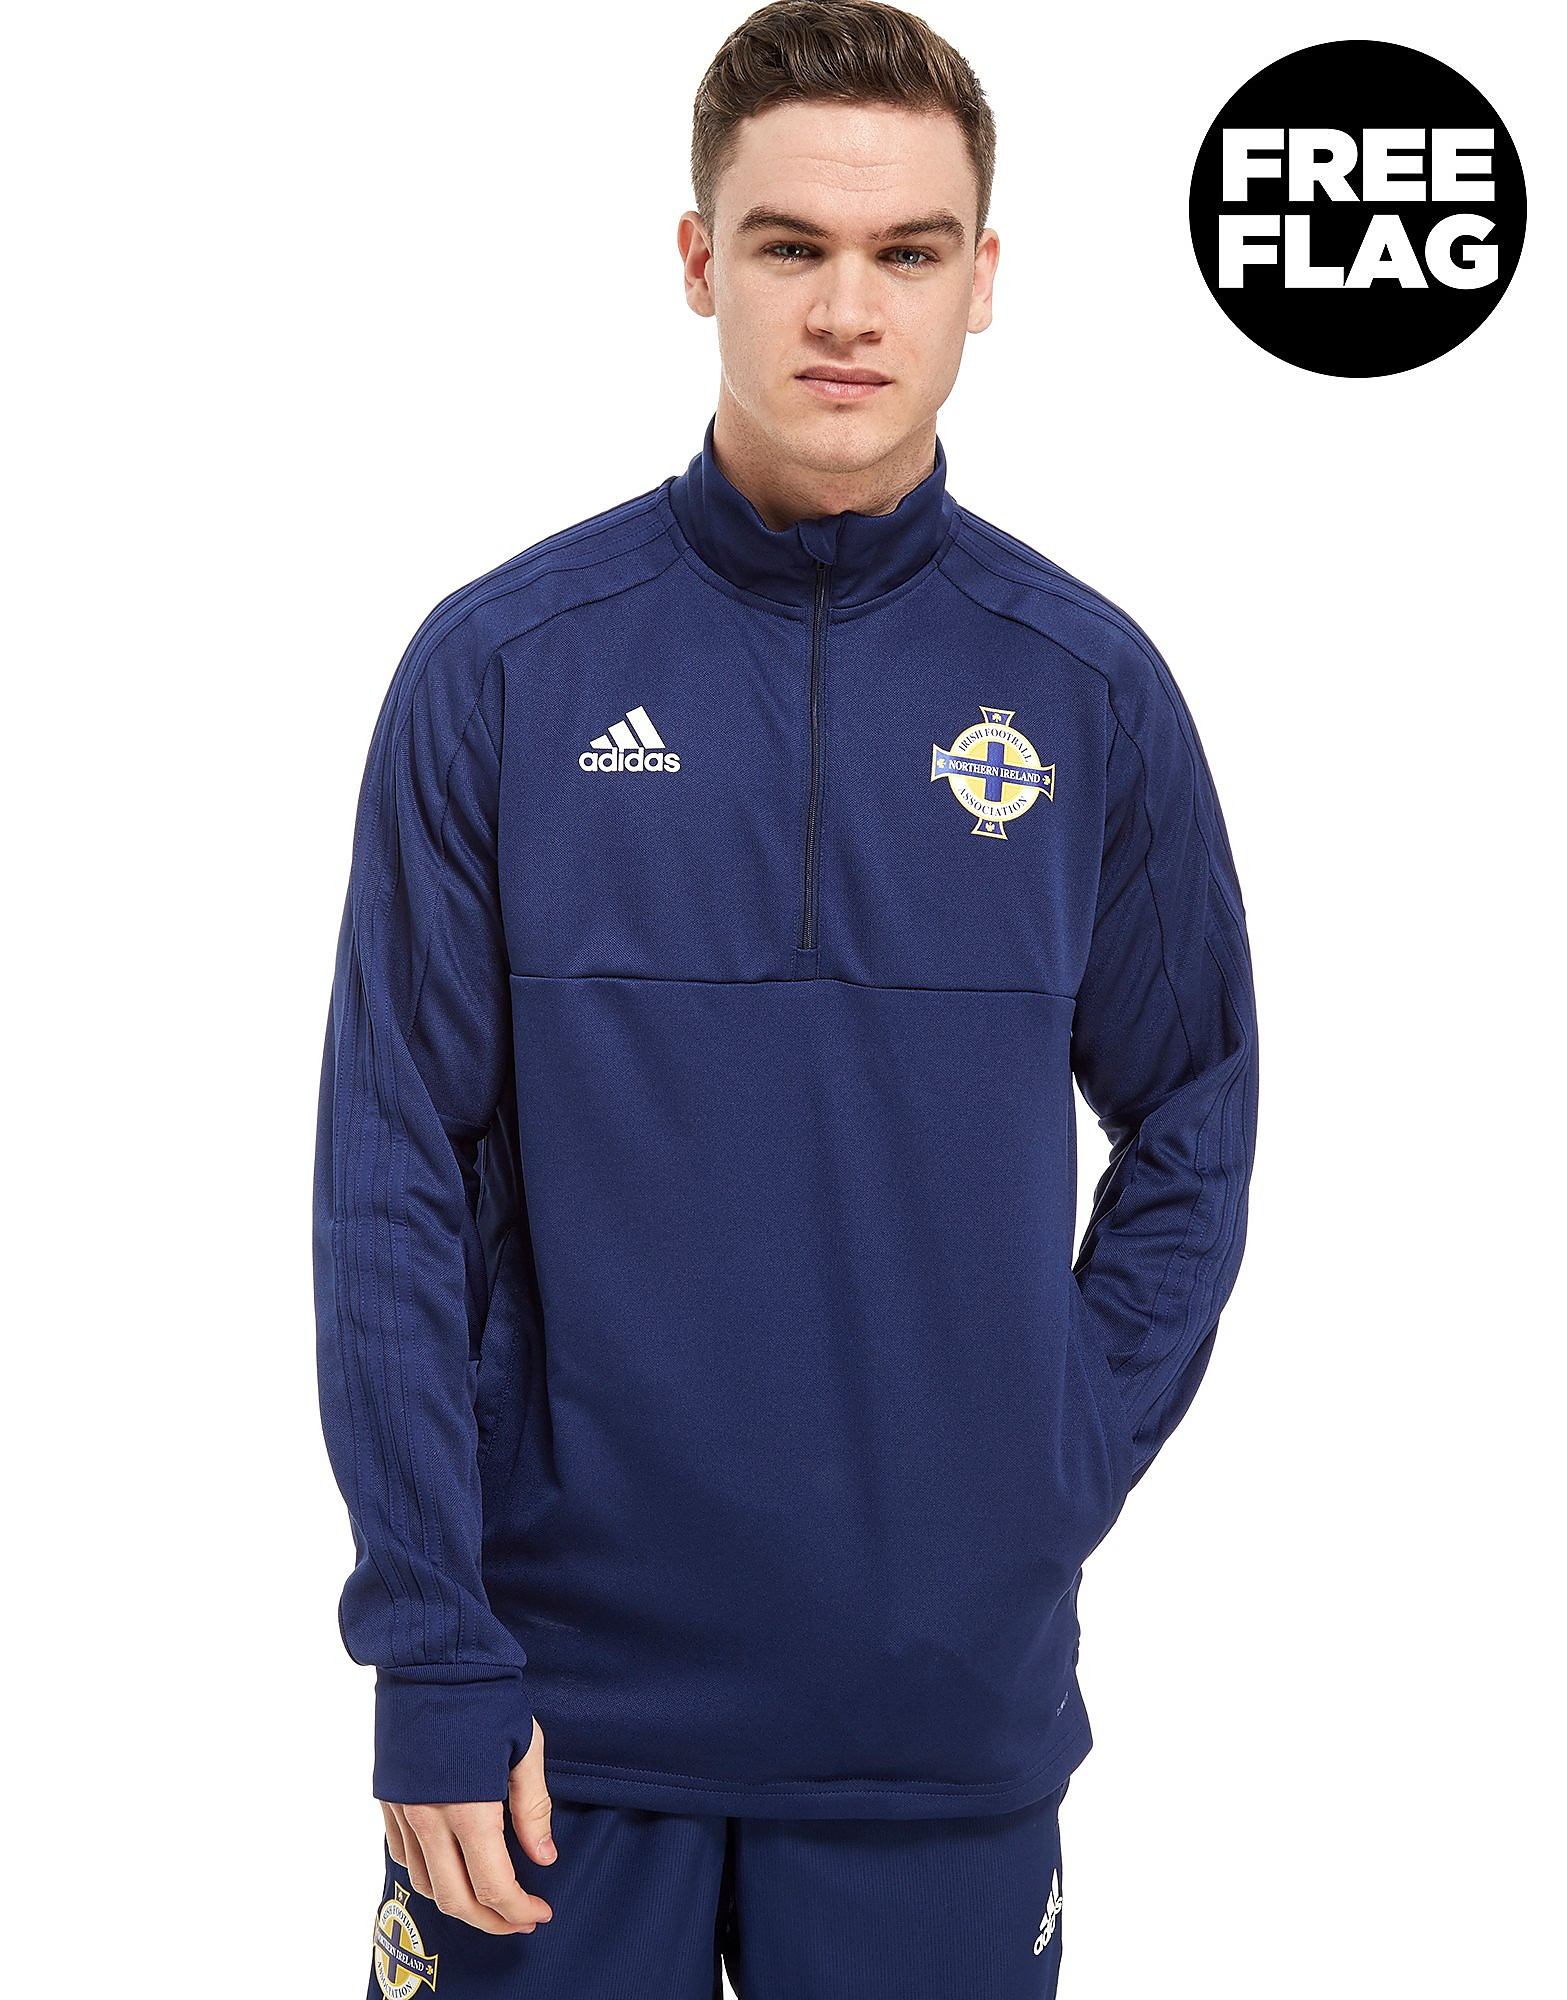 adidas Northern Ireland 2018 Half Zip Top